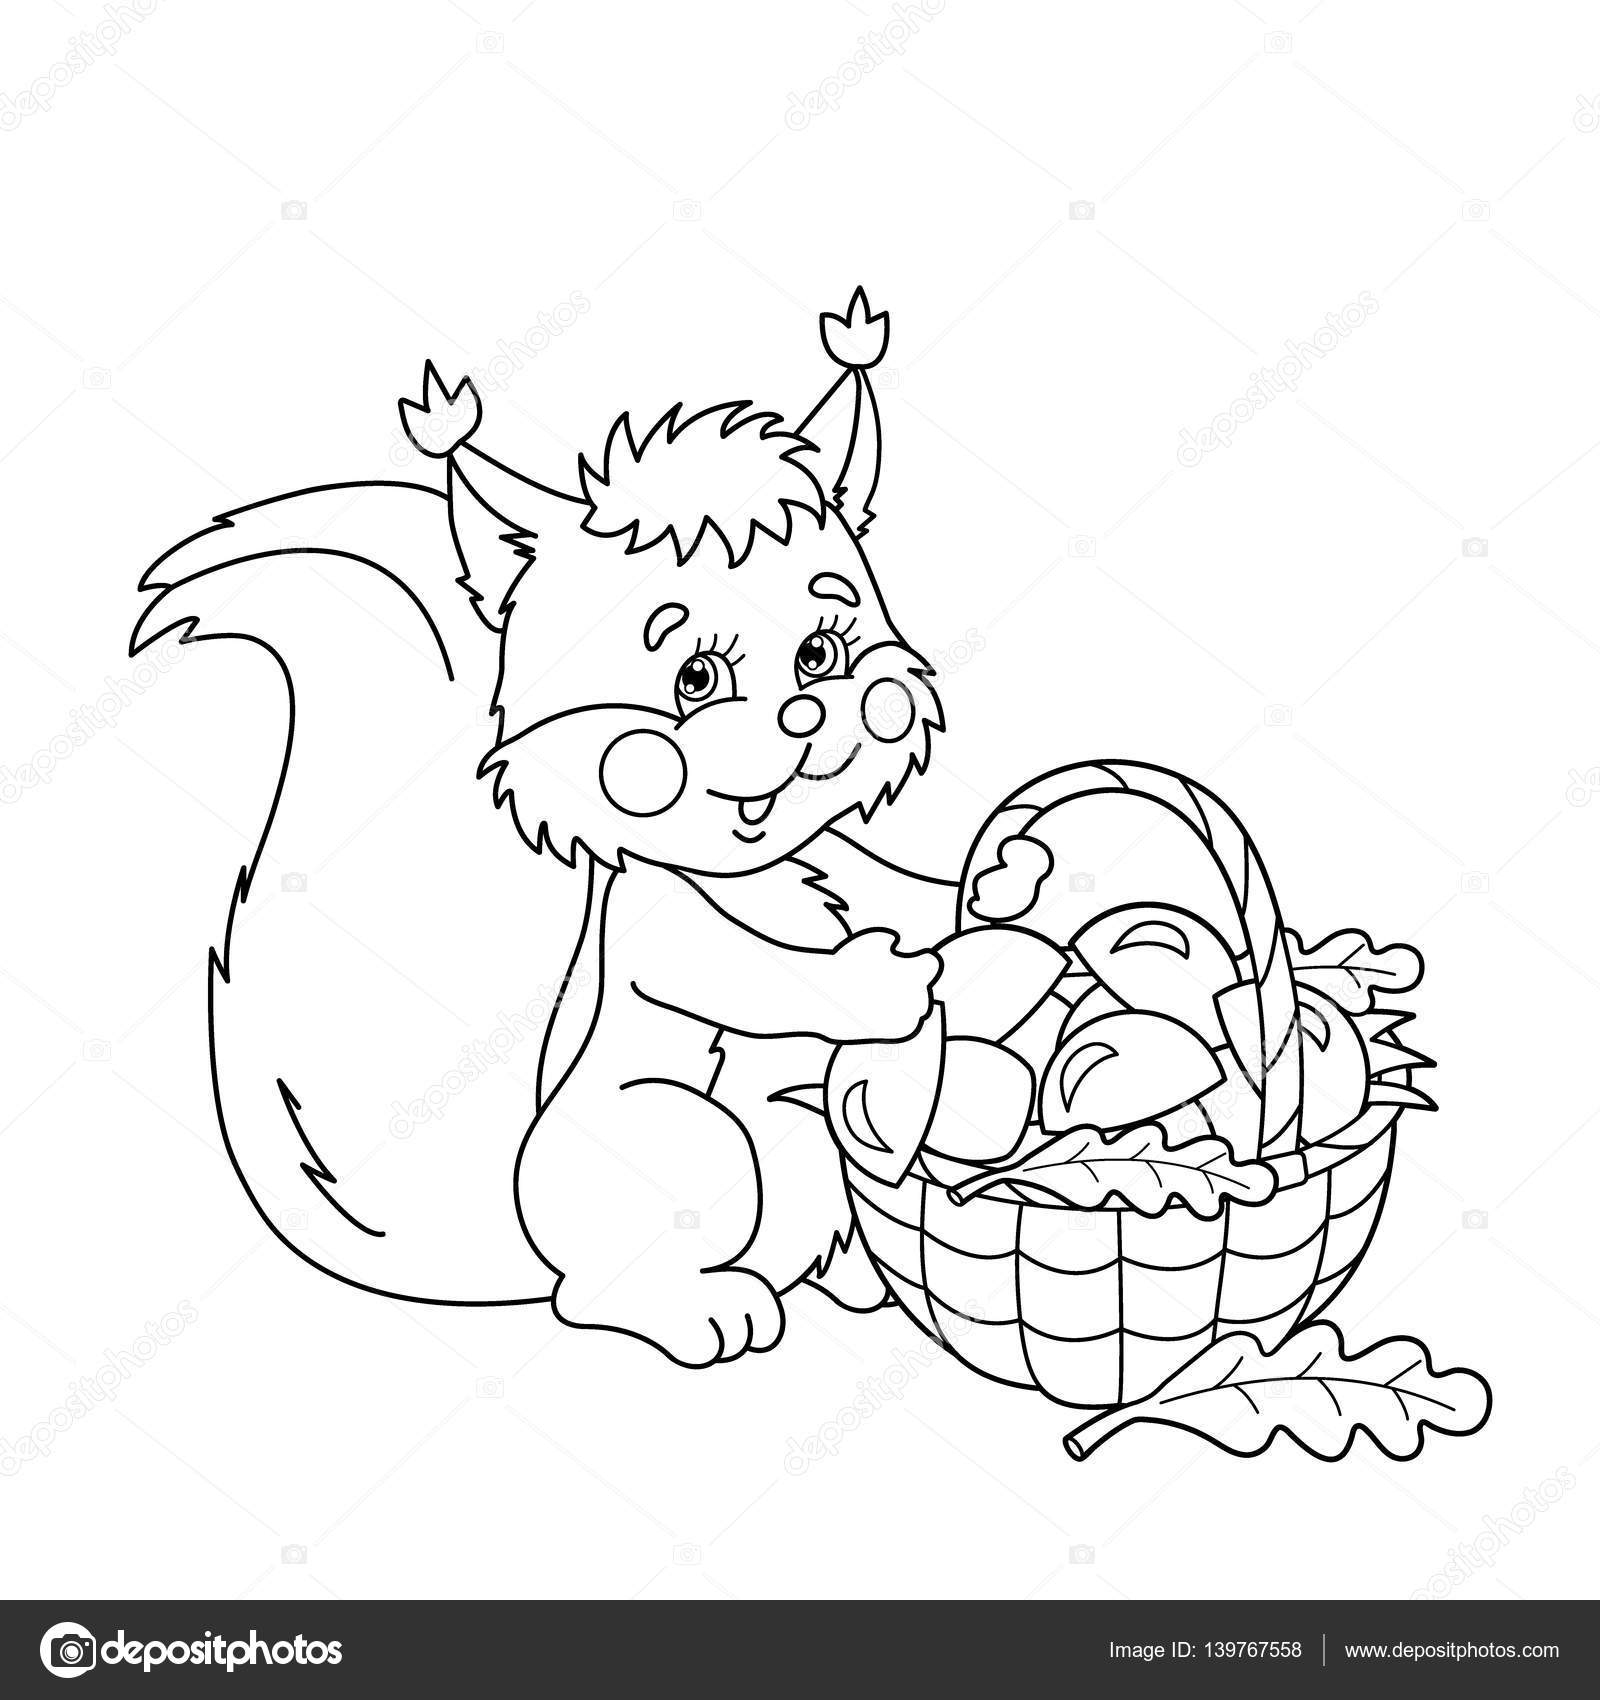 1600x1700 Coloring Page Outline Of Cartoon Squirrel With Basket Of Mushrooms